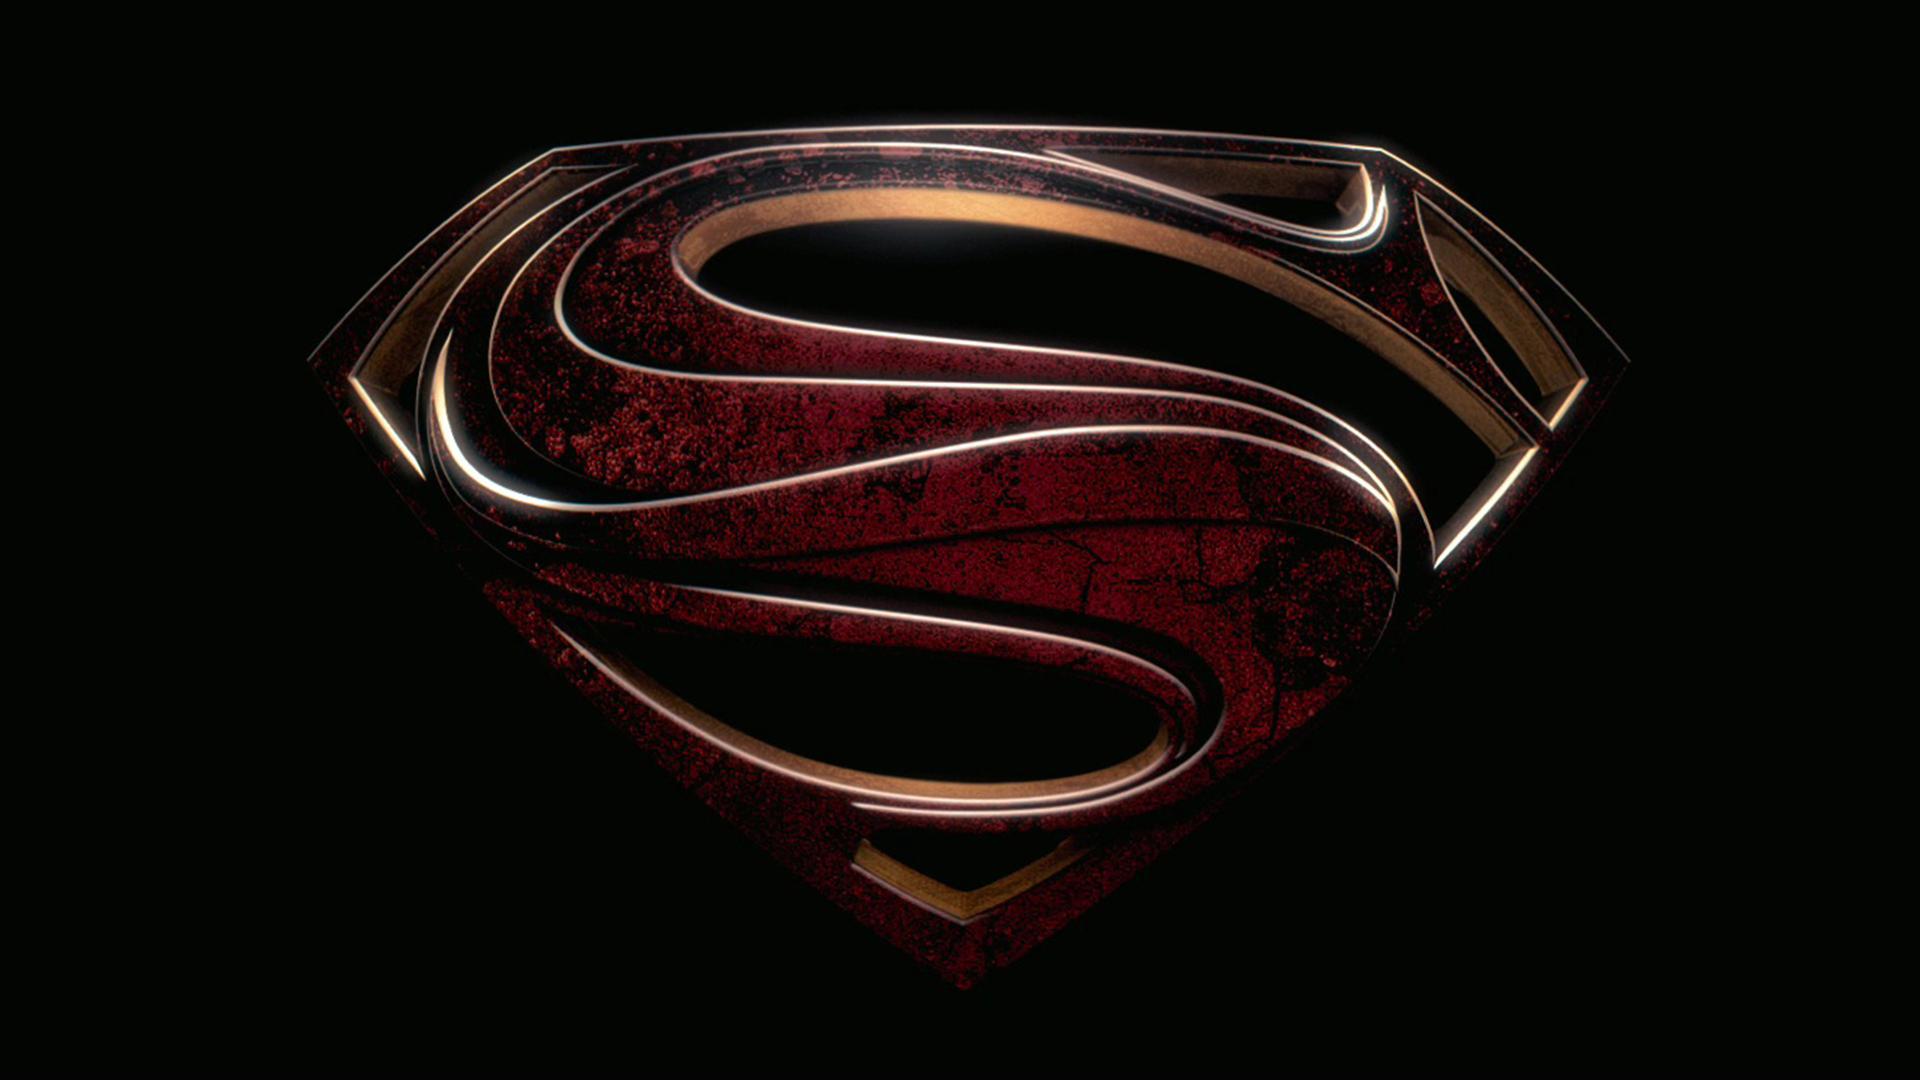 Man of Steel Desktop Wallpapers for HD Widescreen and Mobile 1920x1080